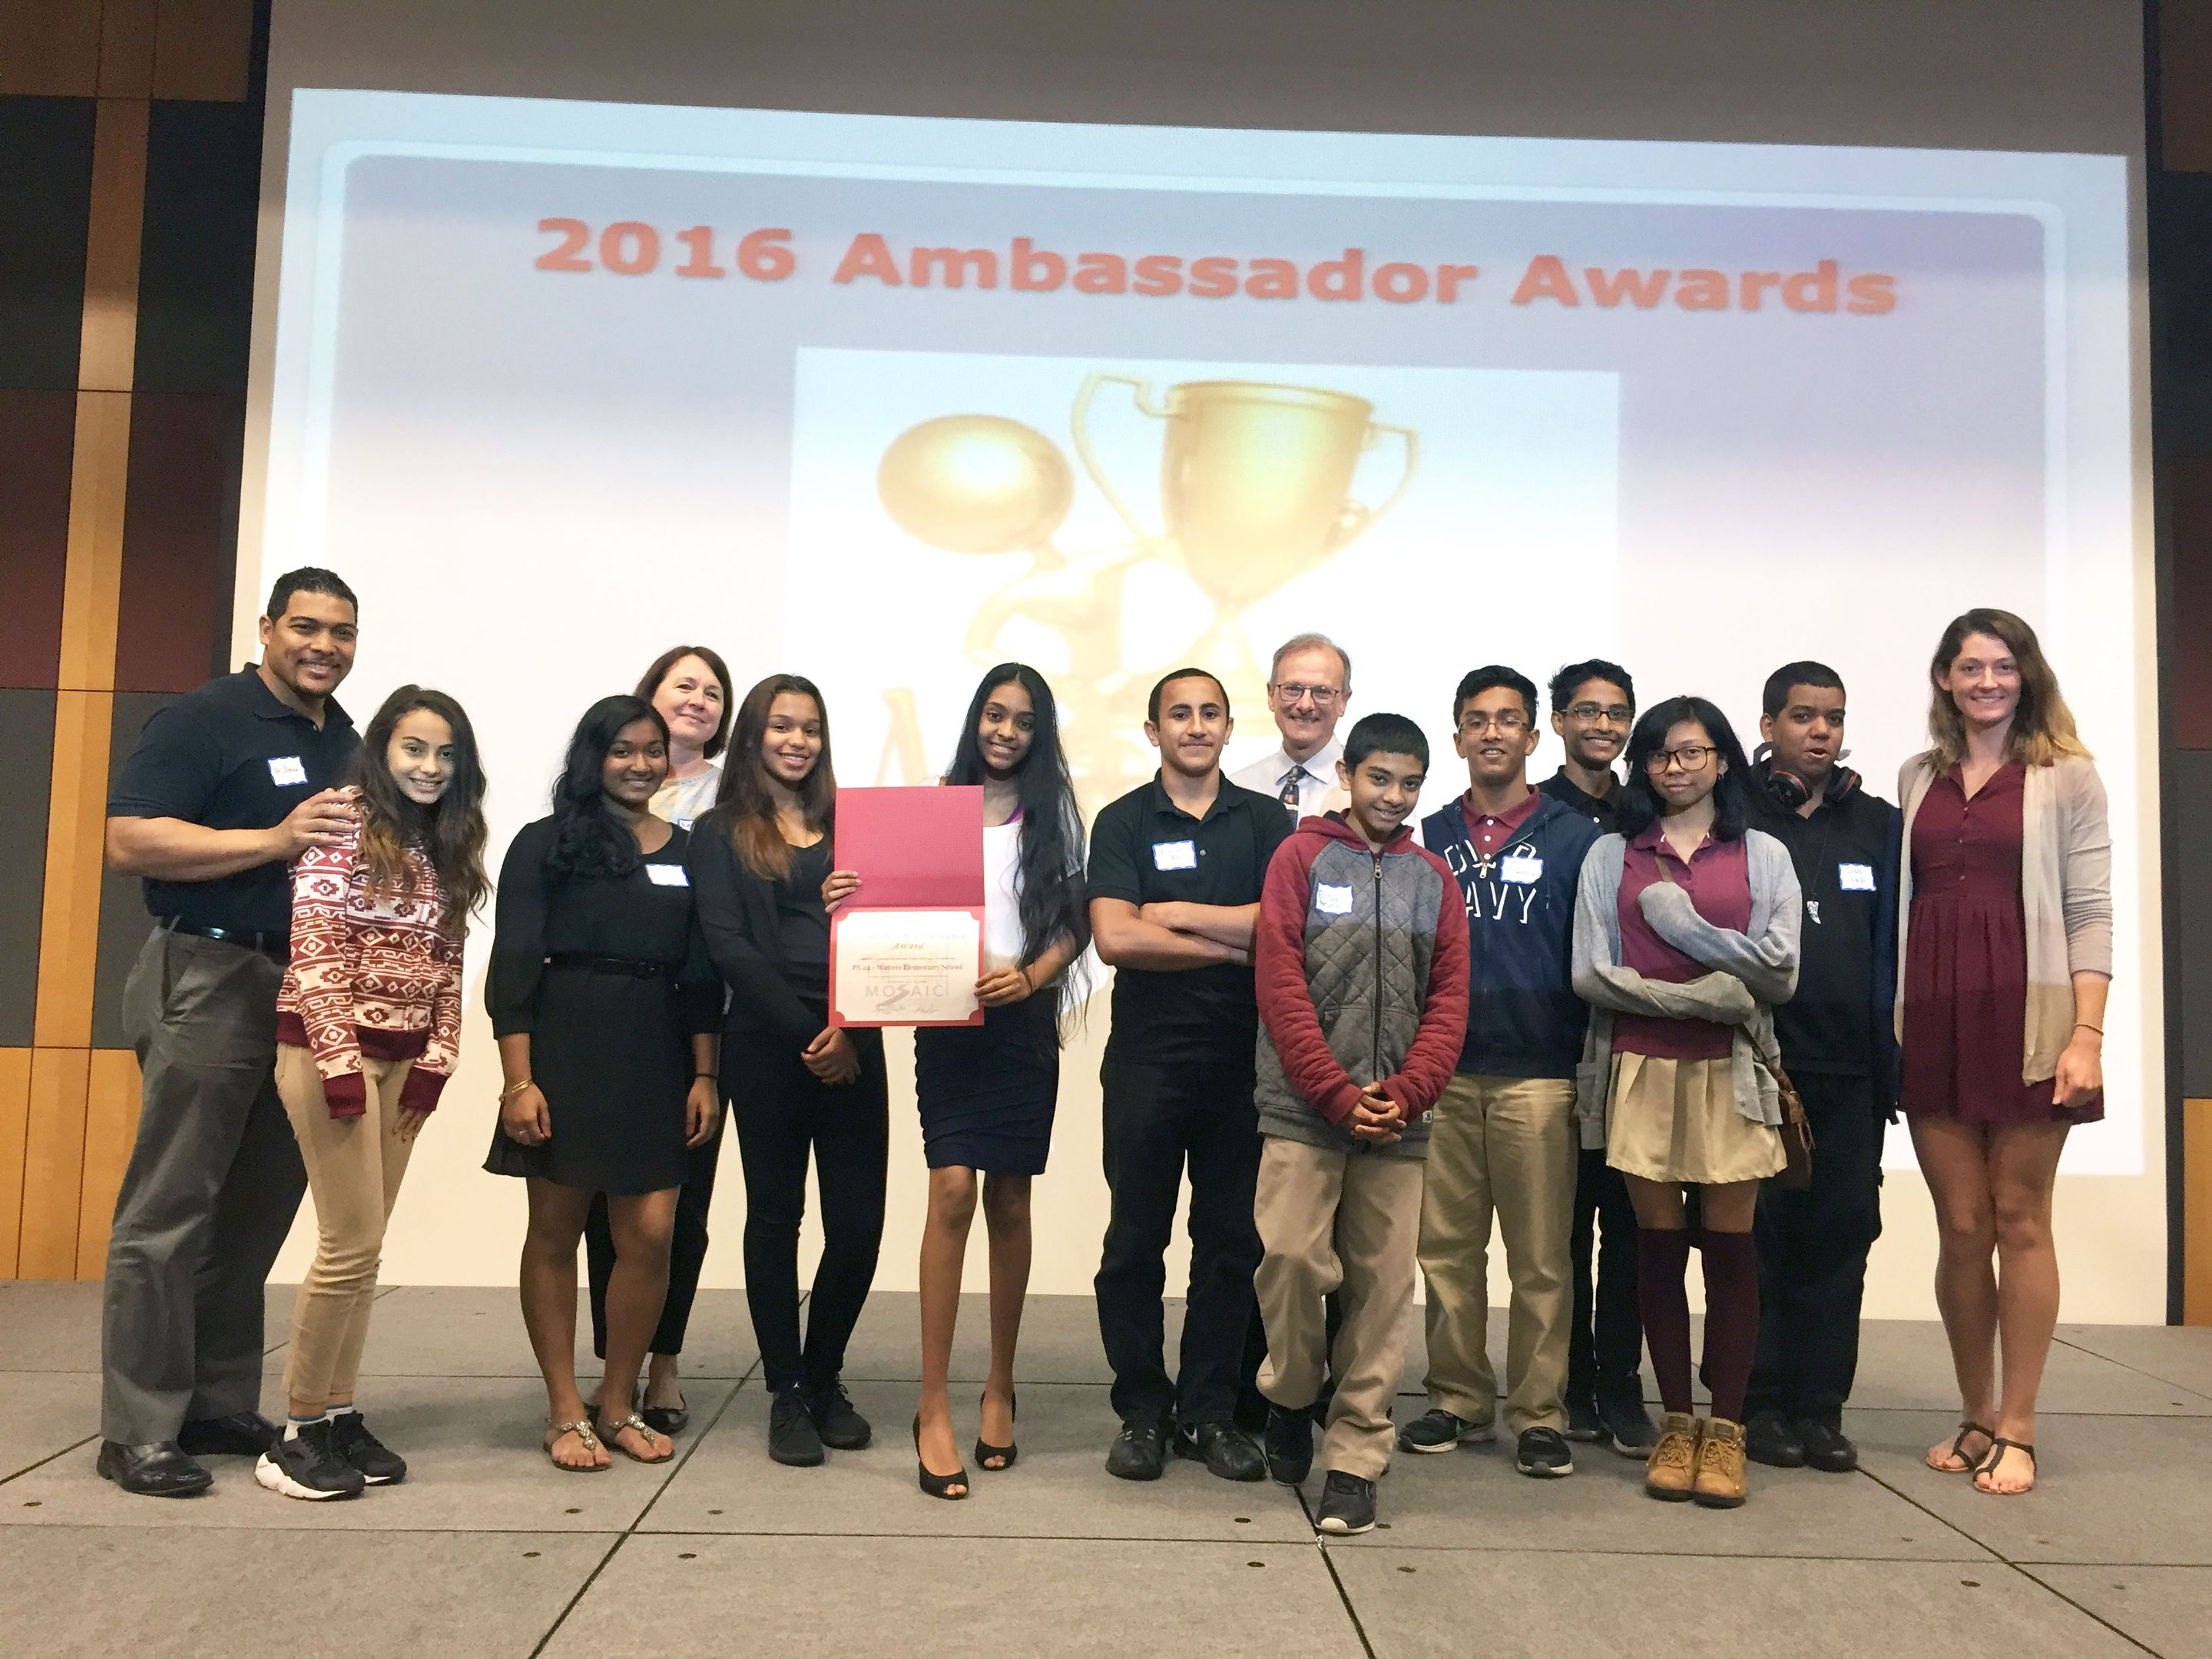 Watters School students at the Ambassador Awards showcase at Rutgers University.